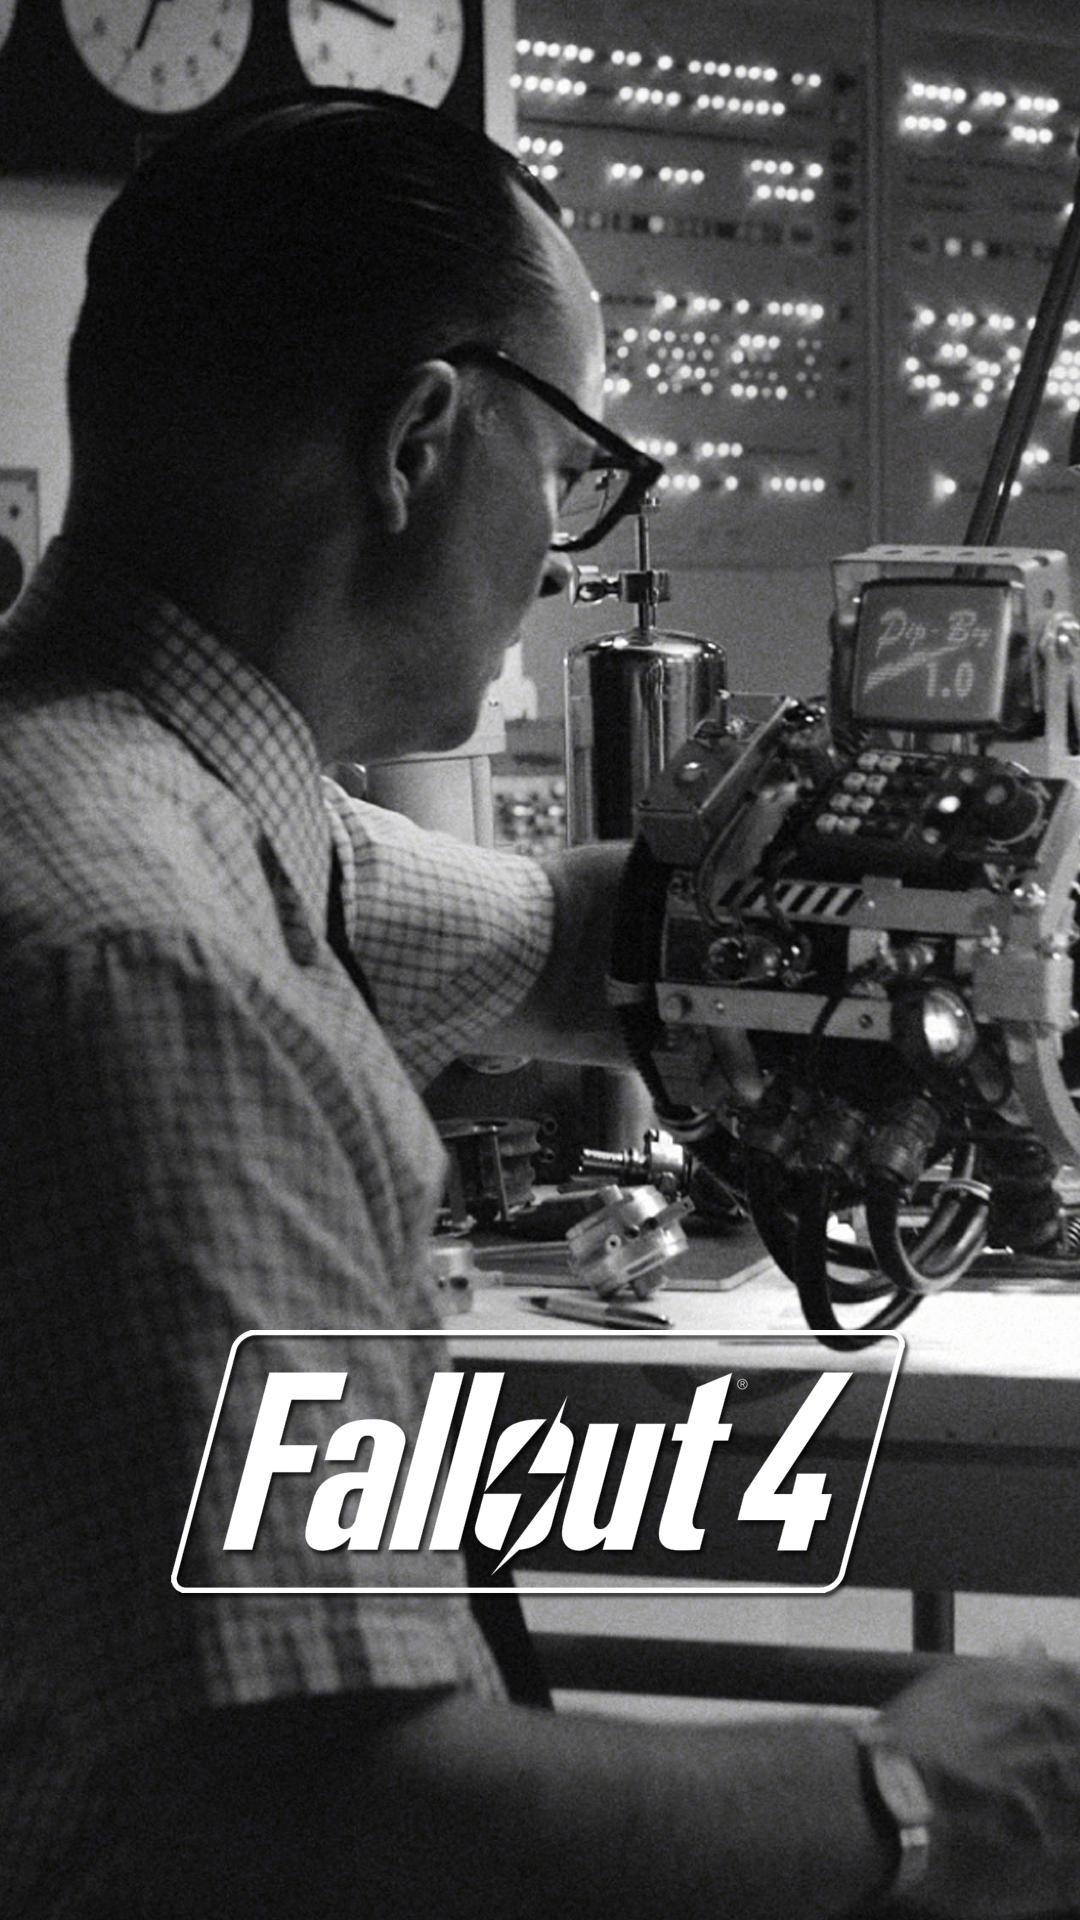 Fallout 4 phone wallpaper ·① Download free High Resolution ...